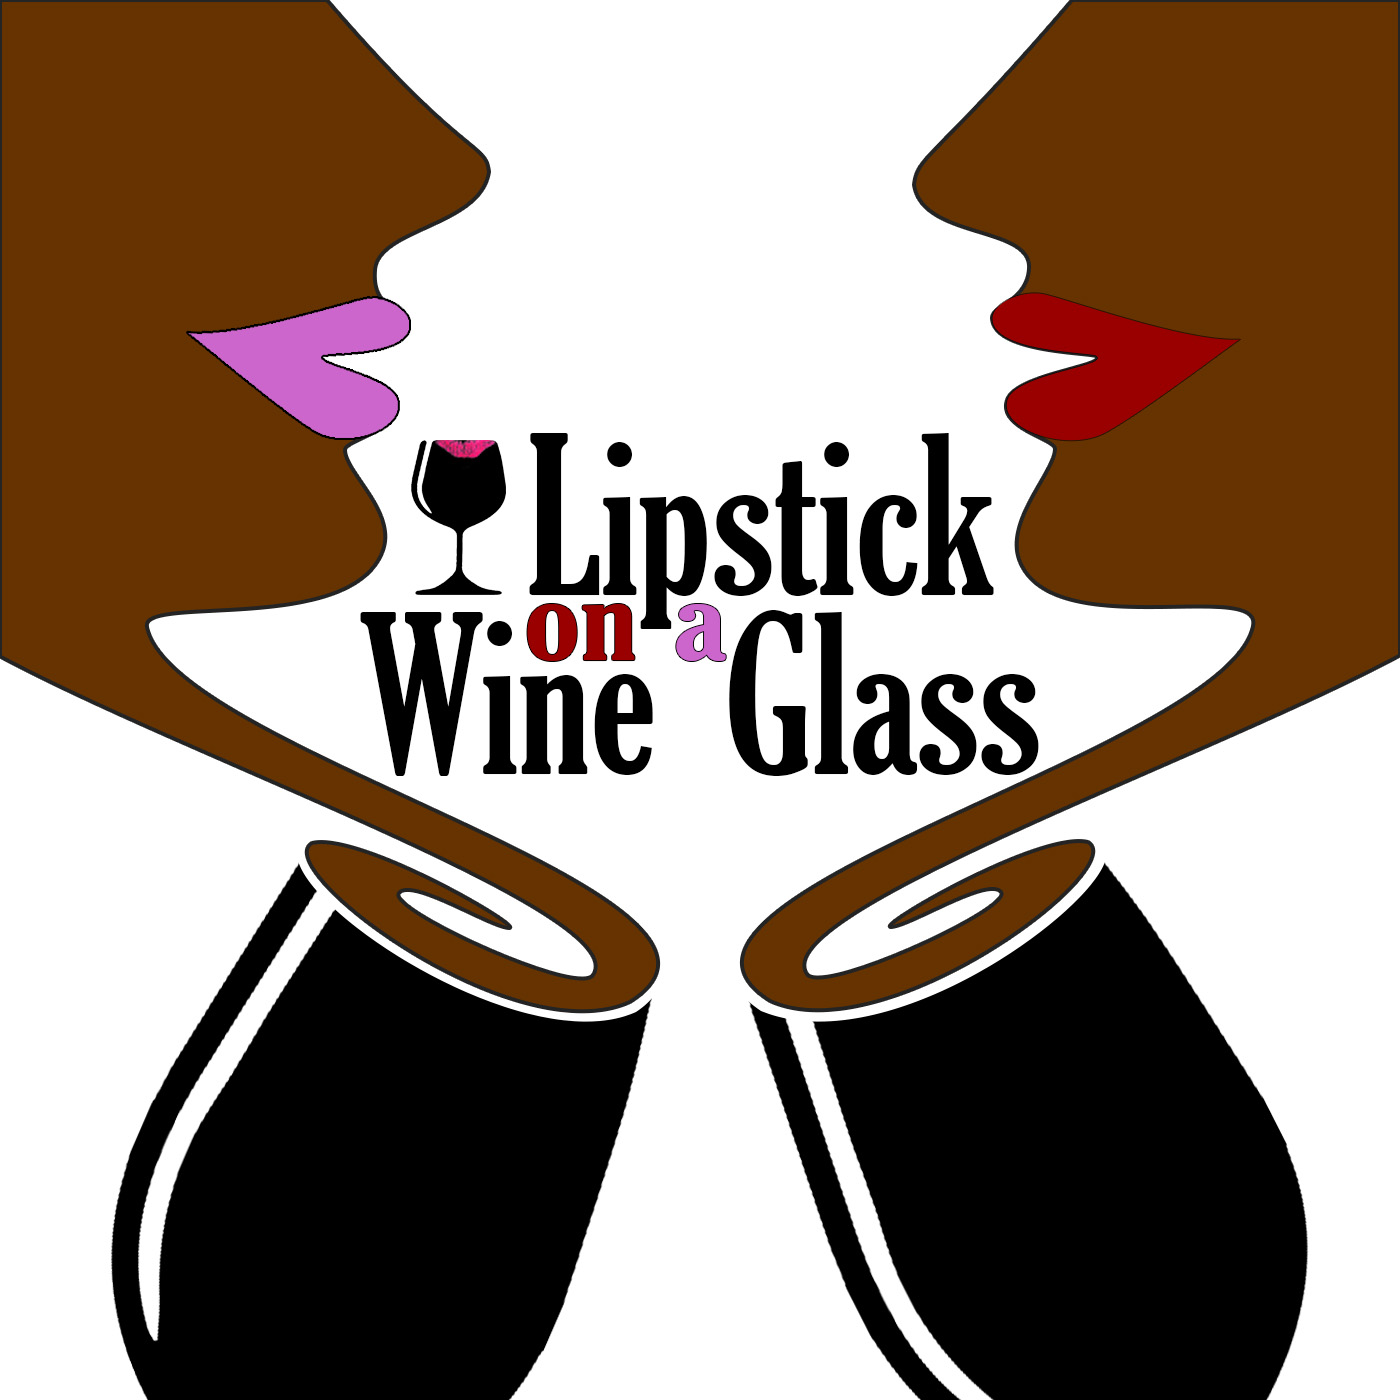 Lipstick On A Wine Glass